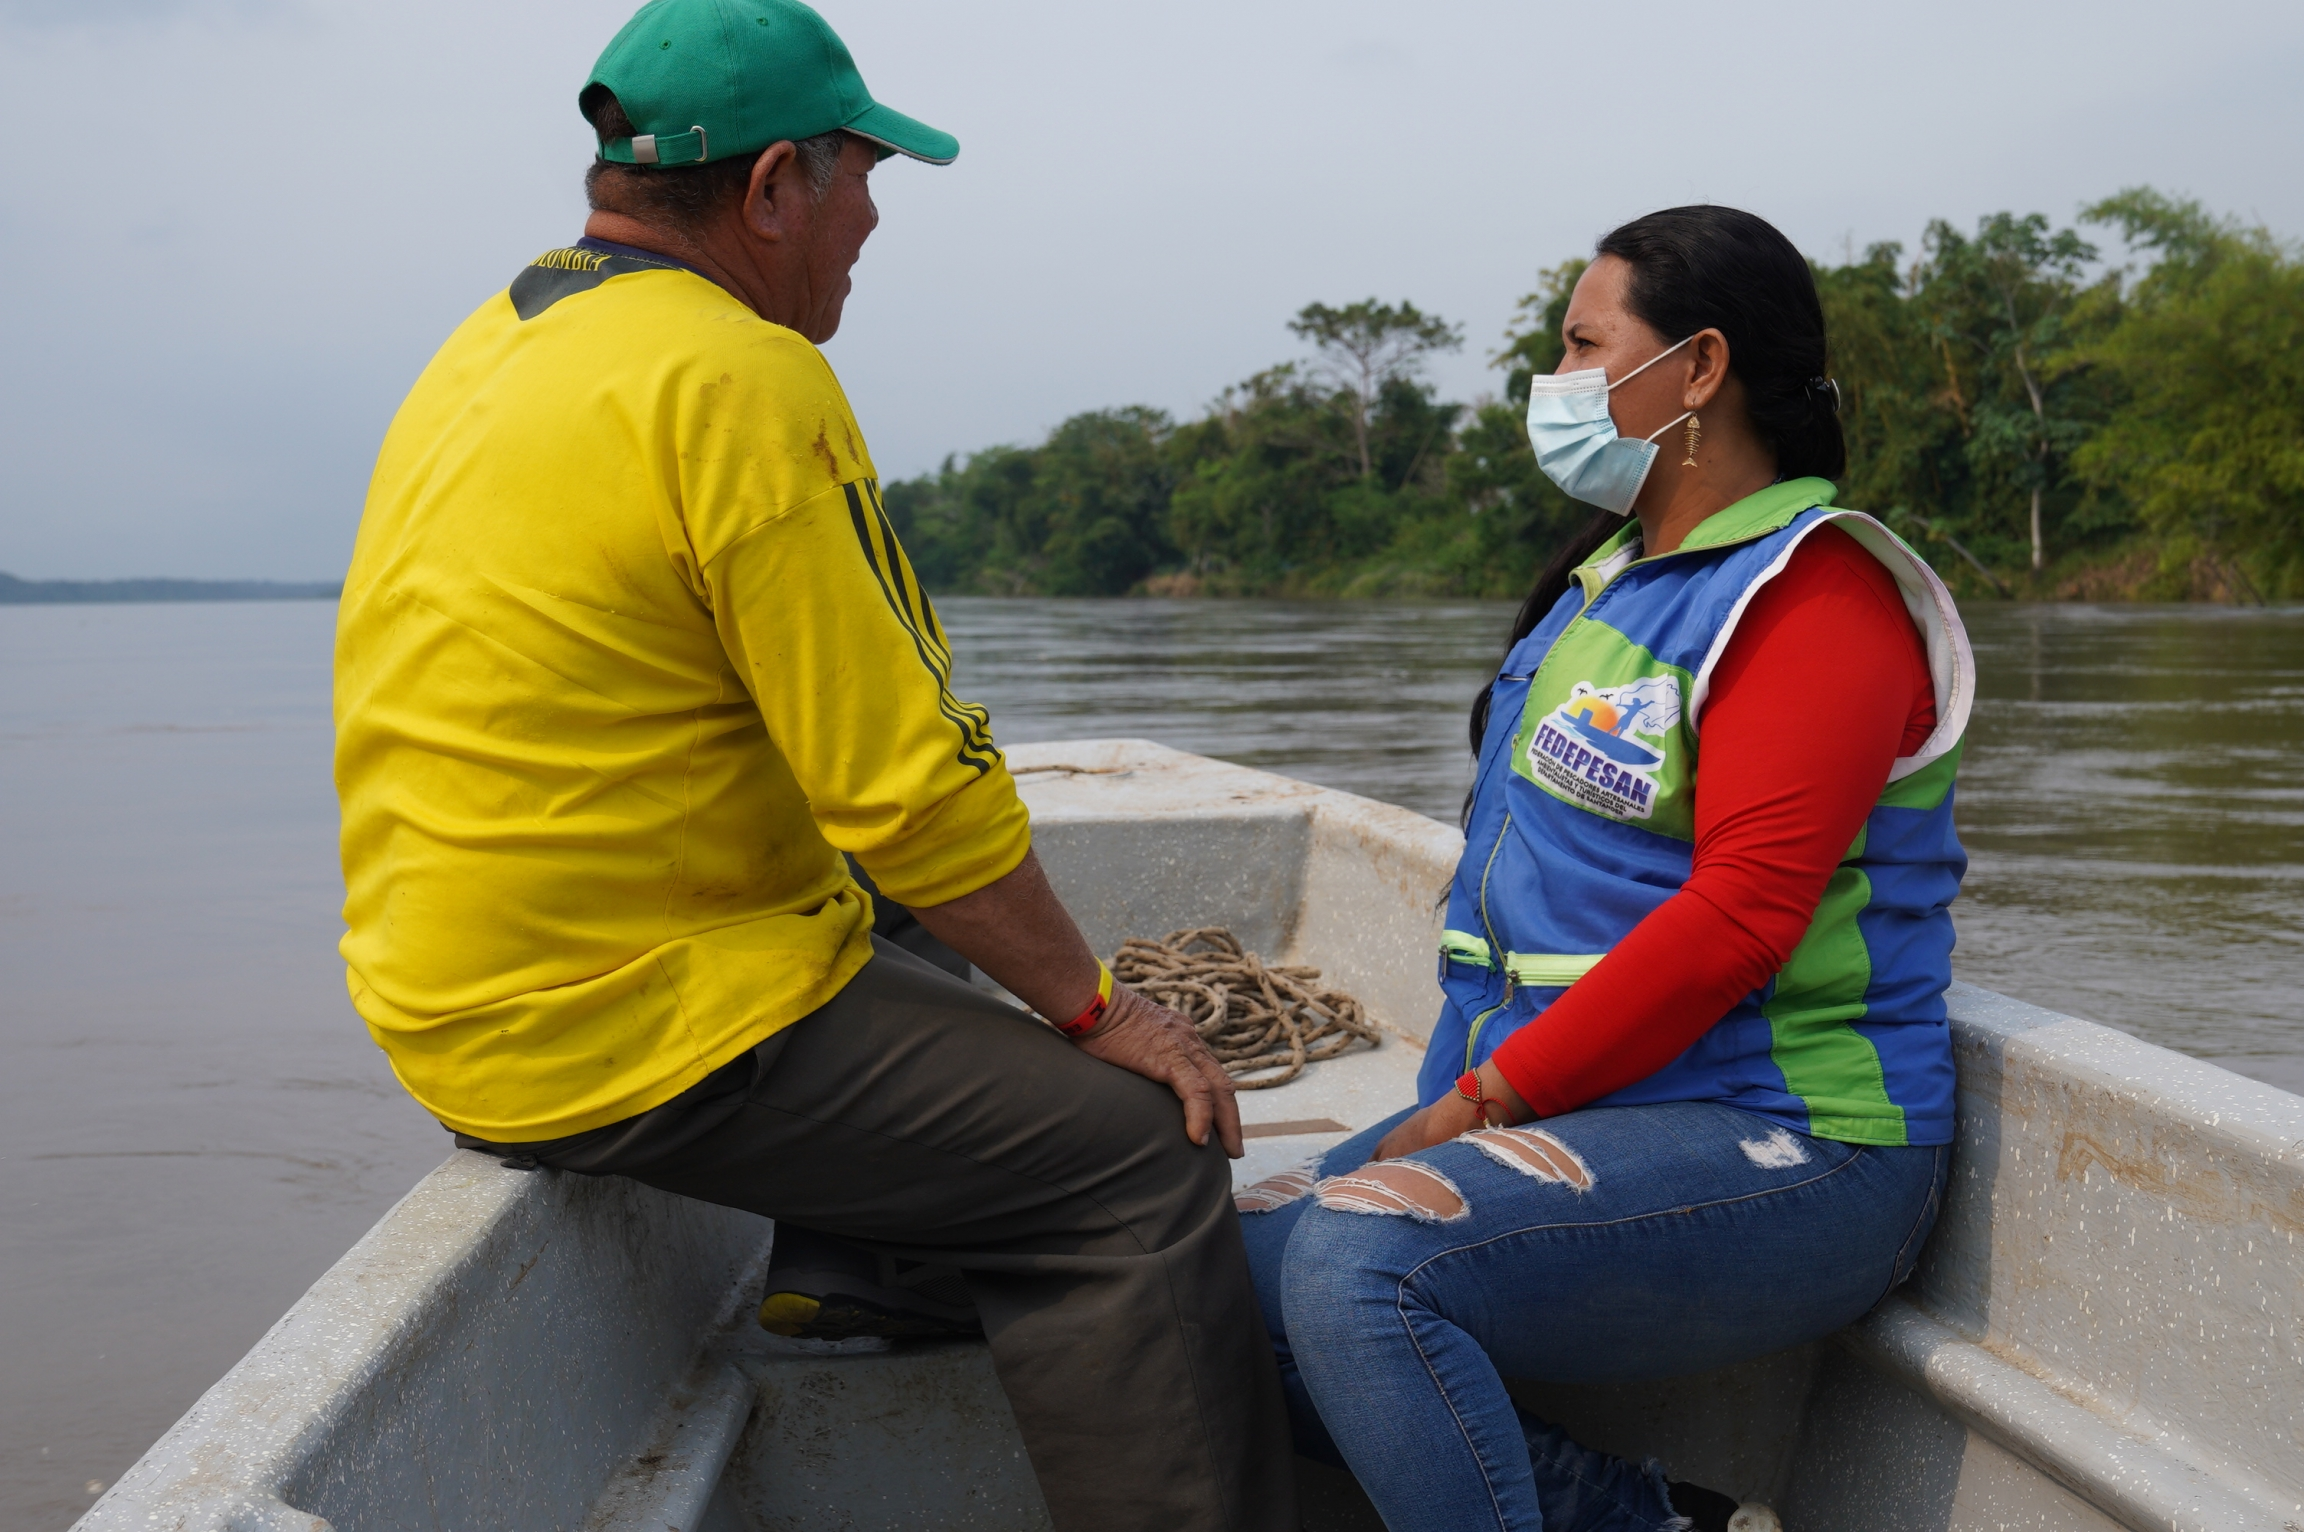 A man wearing a yellow shirt and green cap and a woman wearing a blue vest with a mask ride a boat on a river.